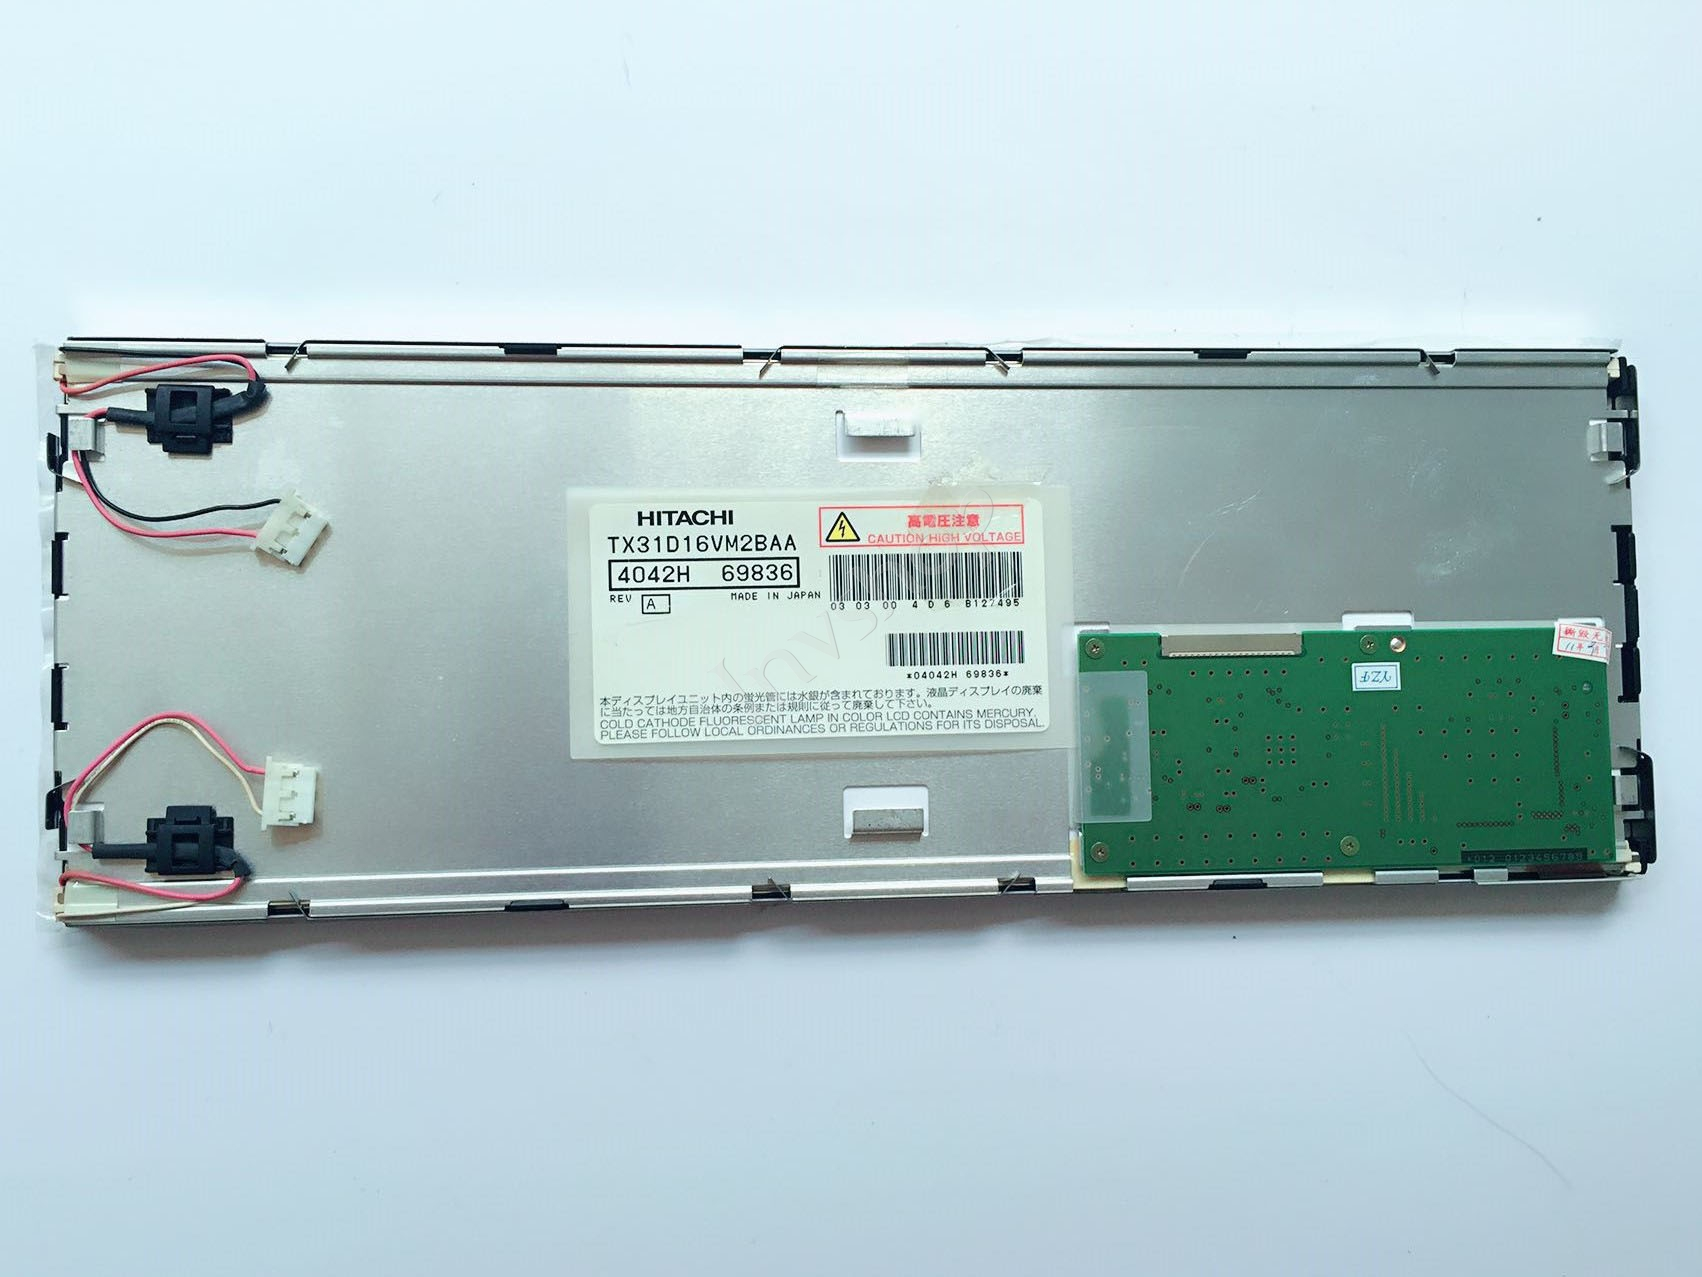 GY3224NHFSW1A 97-02526 REV. D lcd display